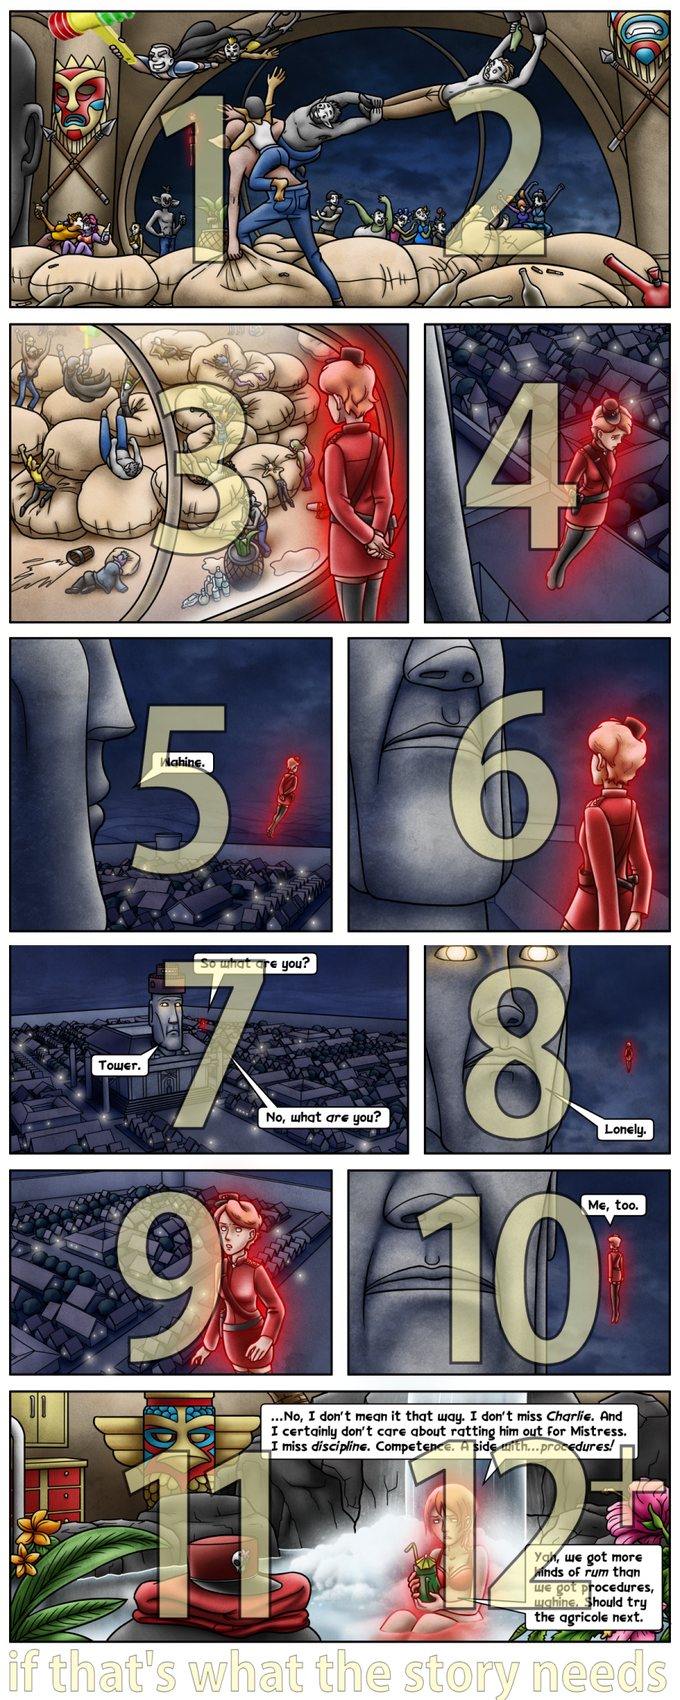 with modeled scenes, books 5+ generally can be double-page updates, each on a 6 panel grid